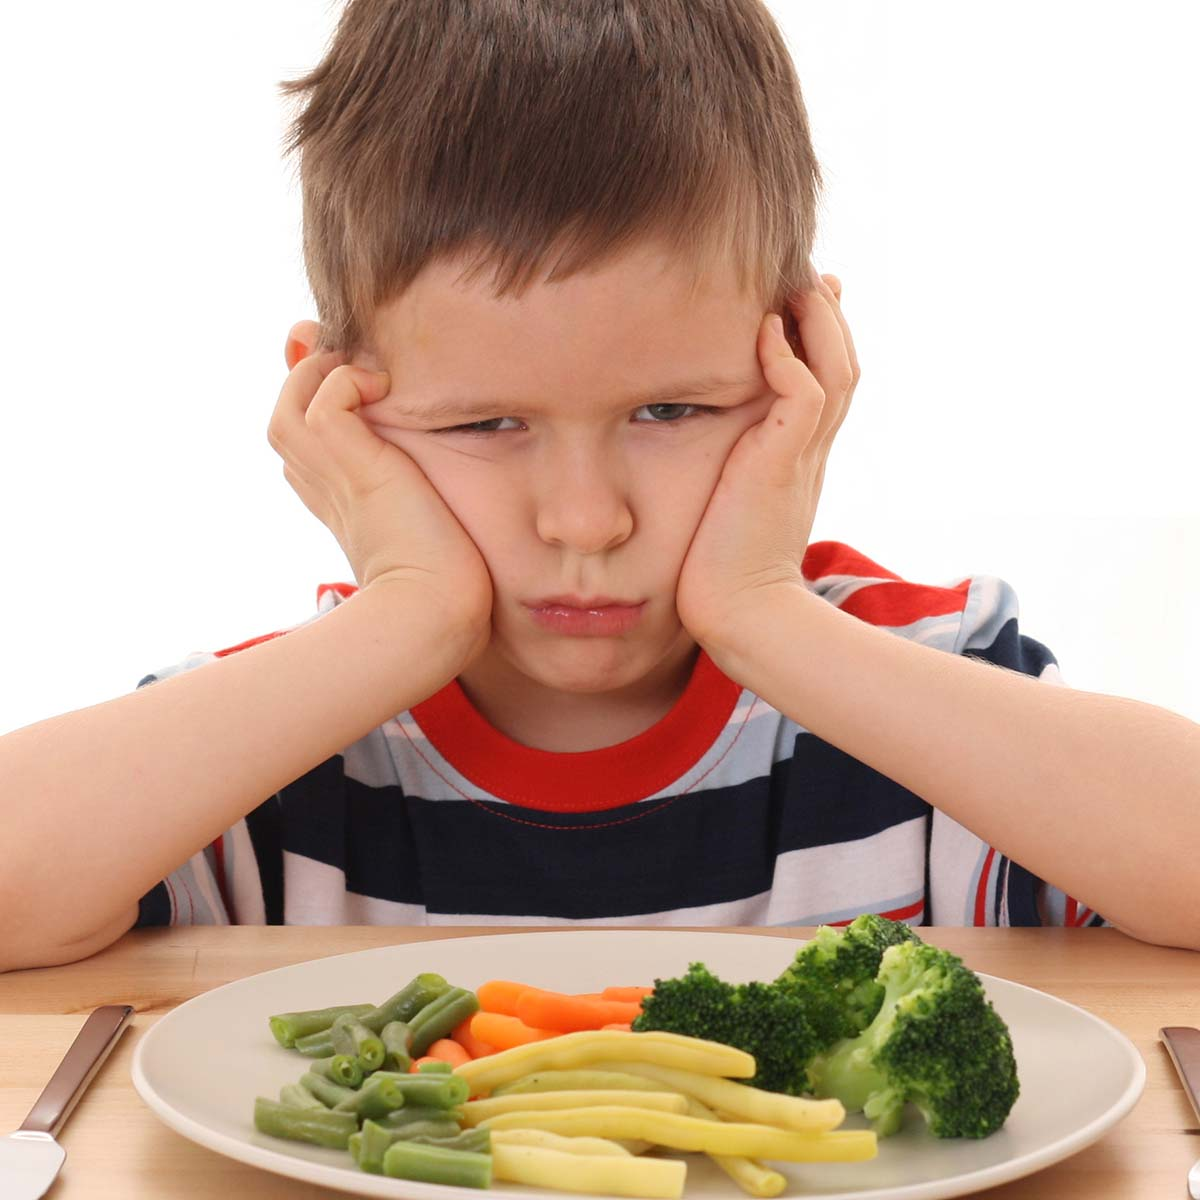 kid looking sad over a plate of veggies